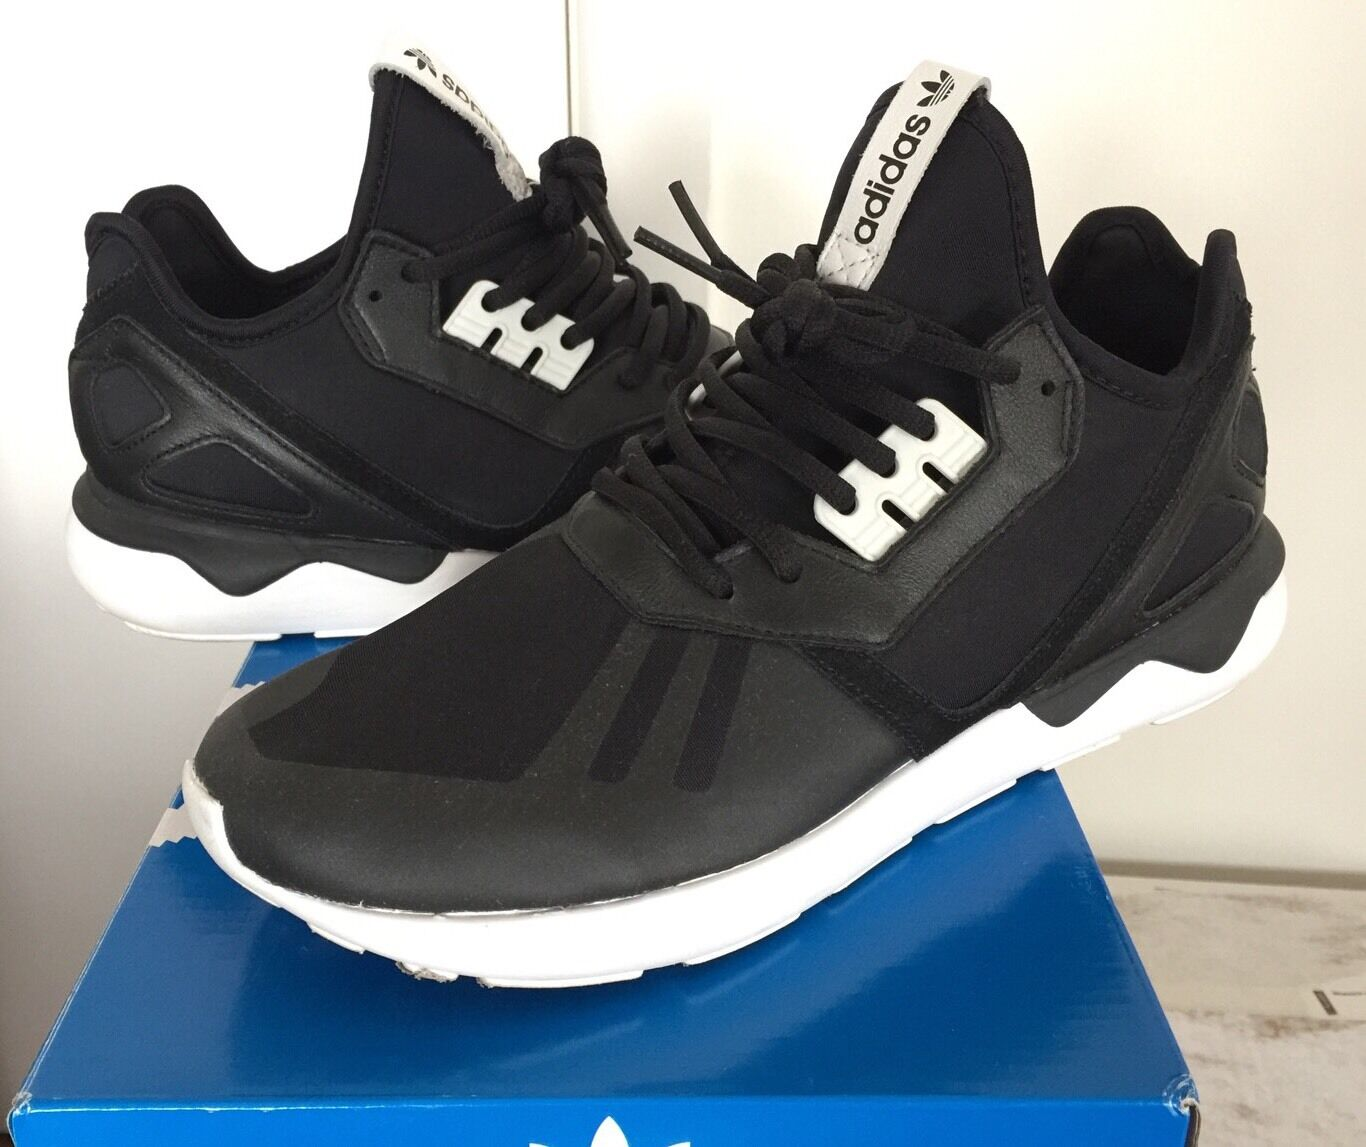 Adidas 2014 OG Color Tubular Black white 9 8.5 zx flux Ultra boost stan smith X